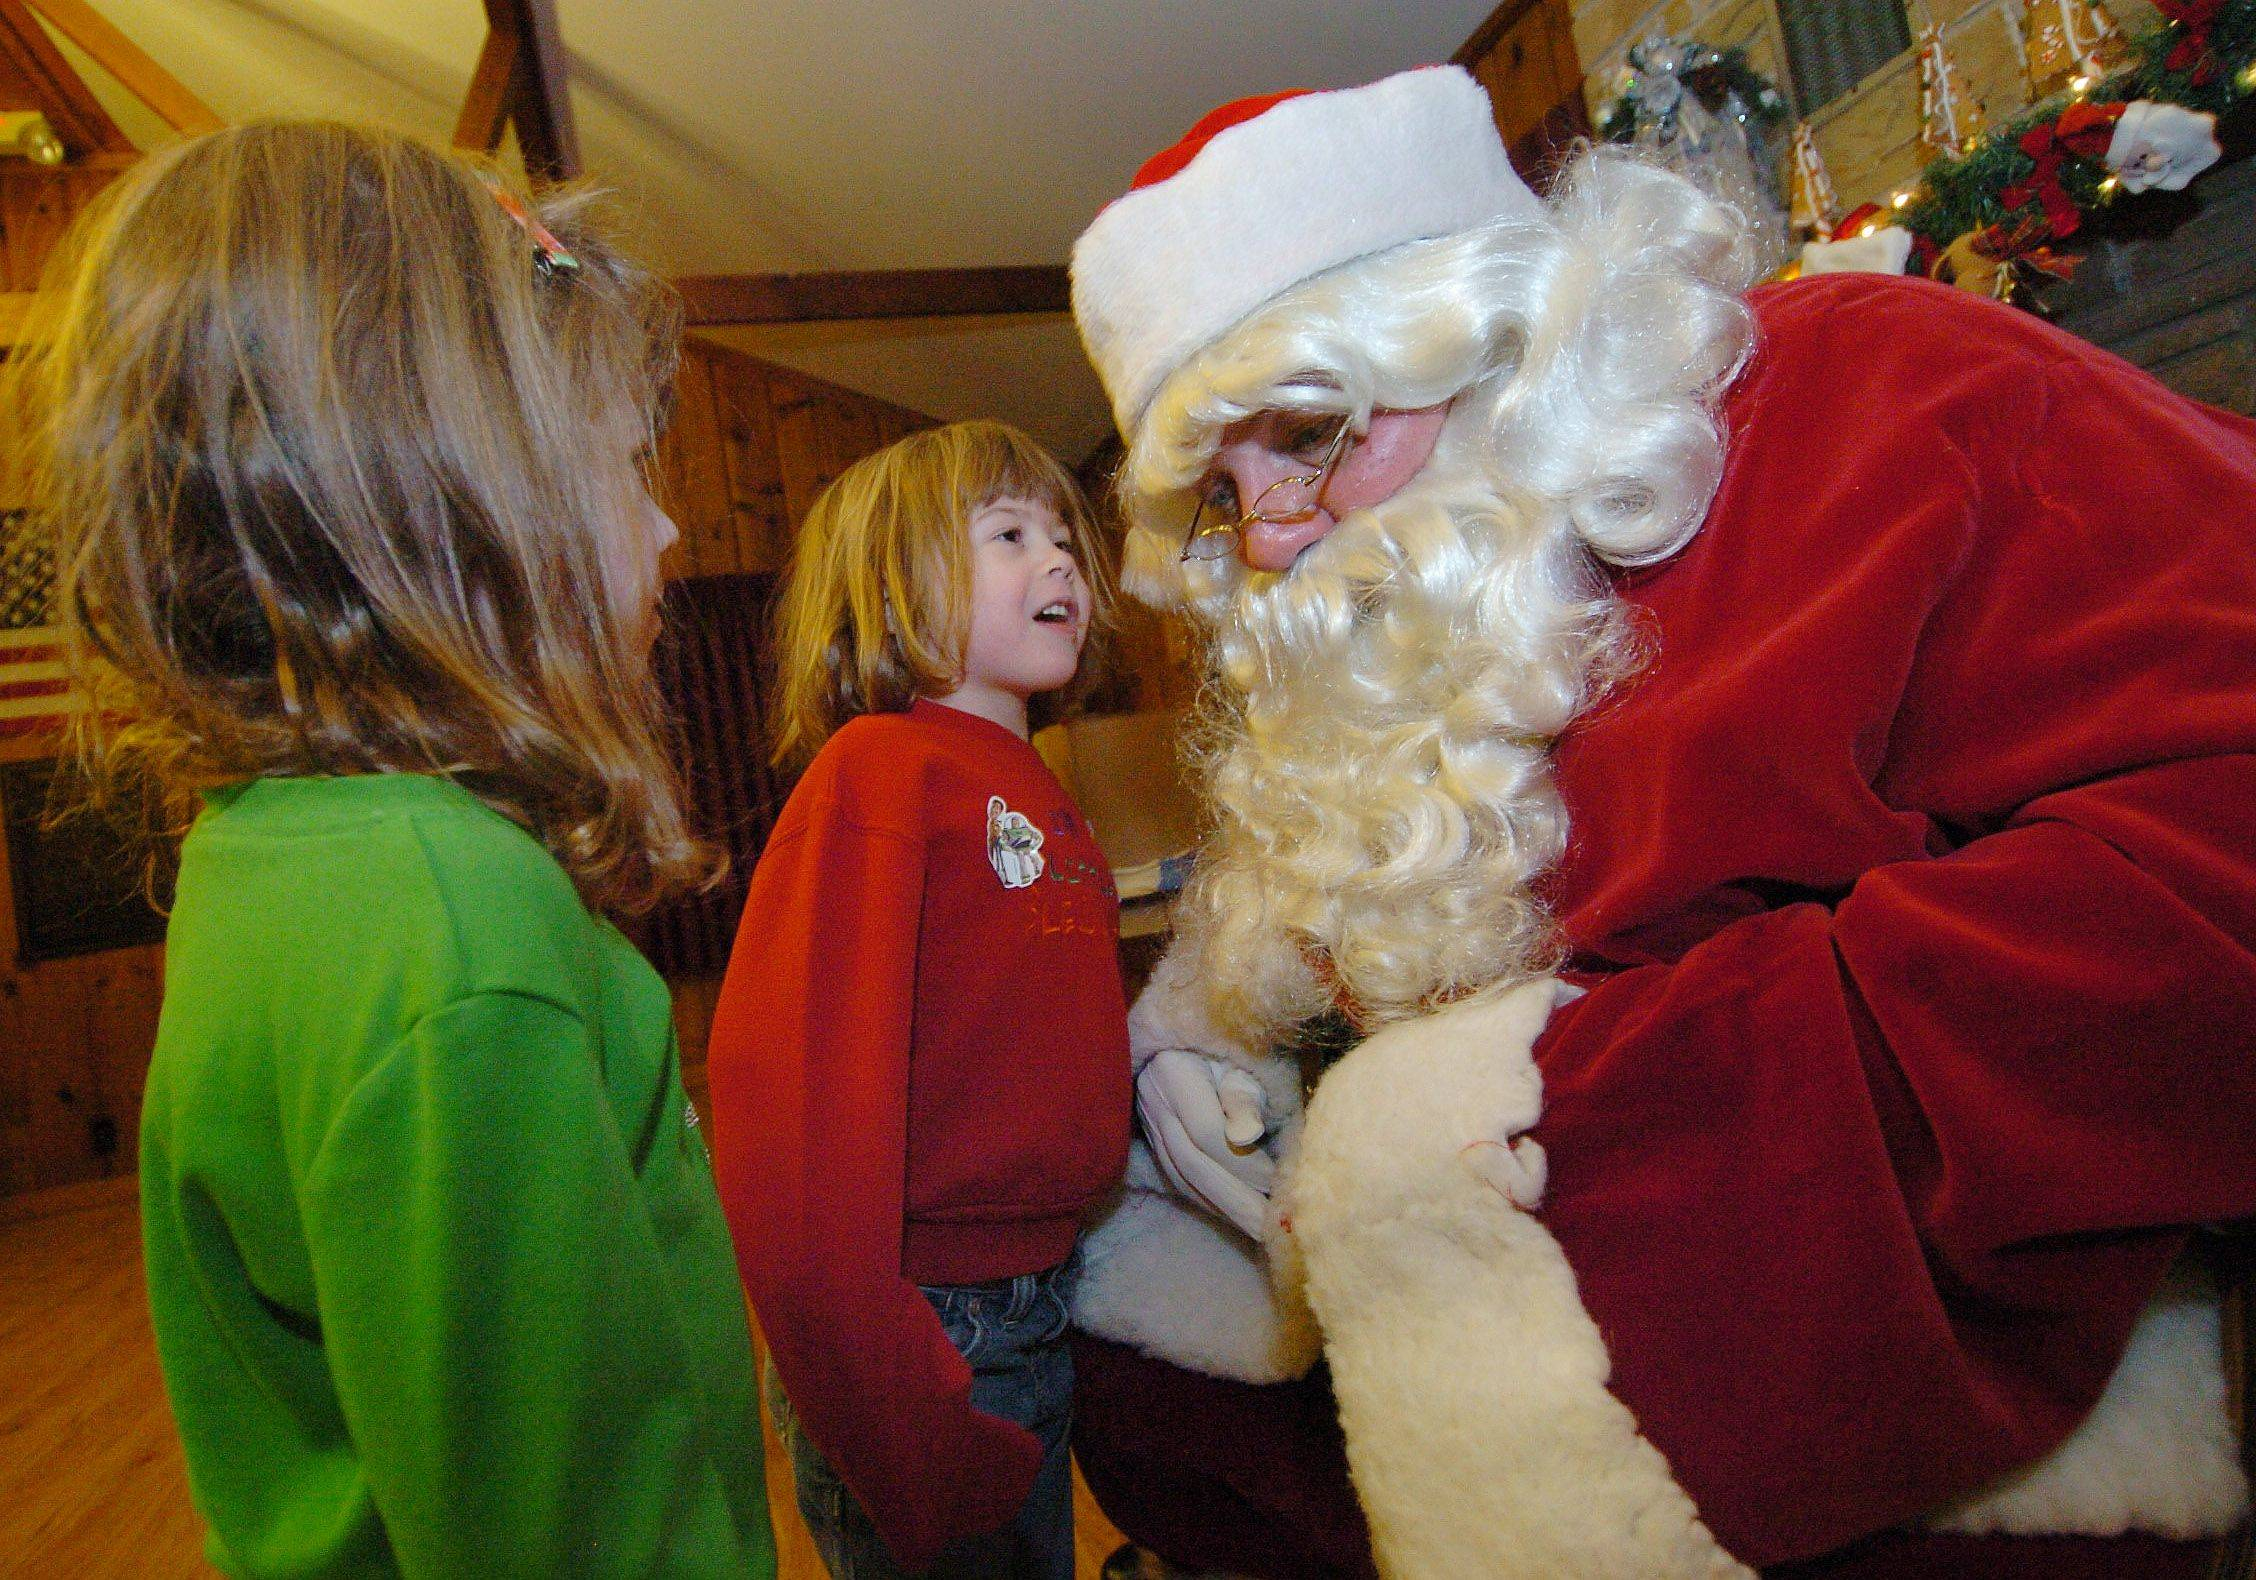 Twin sisters Anna, left, and Emily Nauman whisper to Santa what they want for Christmas in the log cabin prior to the Christmas tree lighting in Bartlett Park.